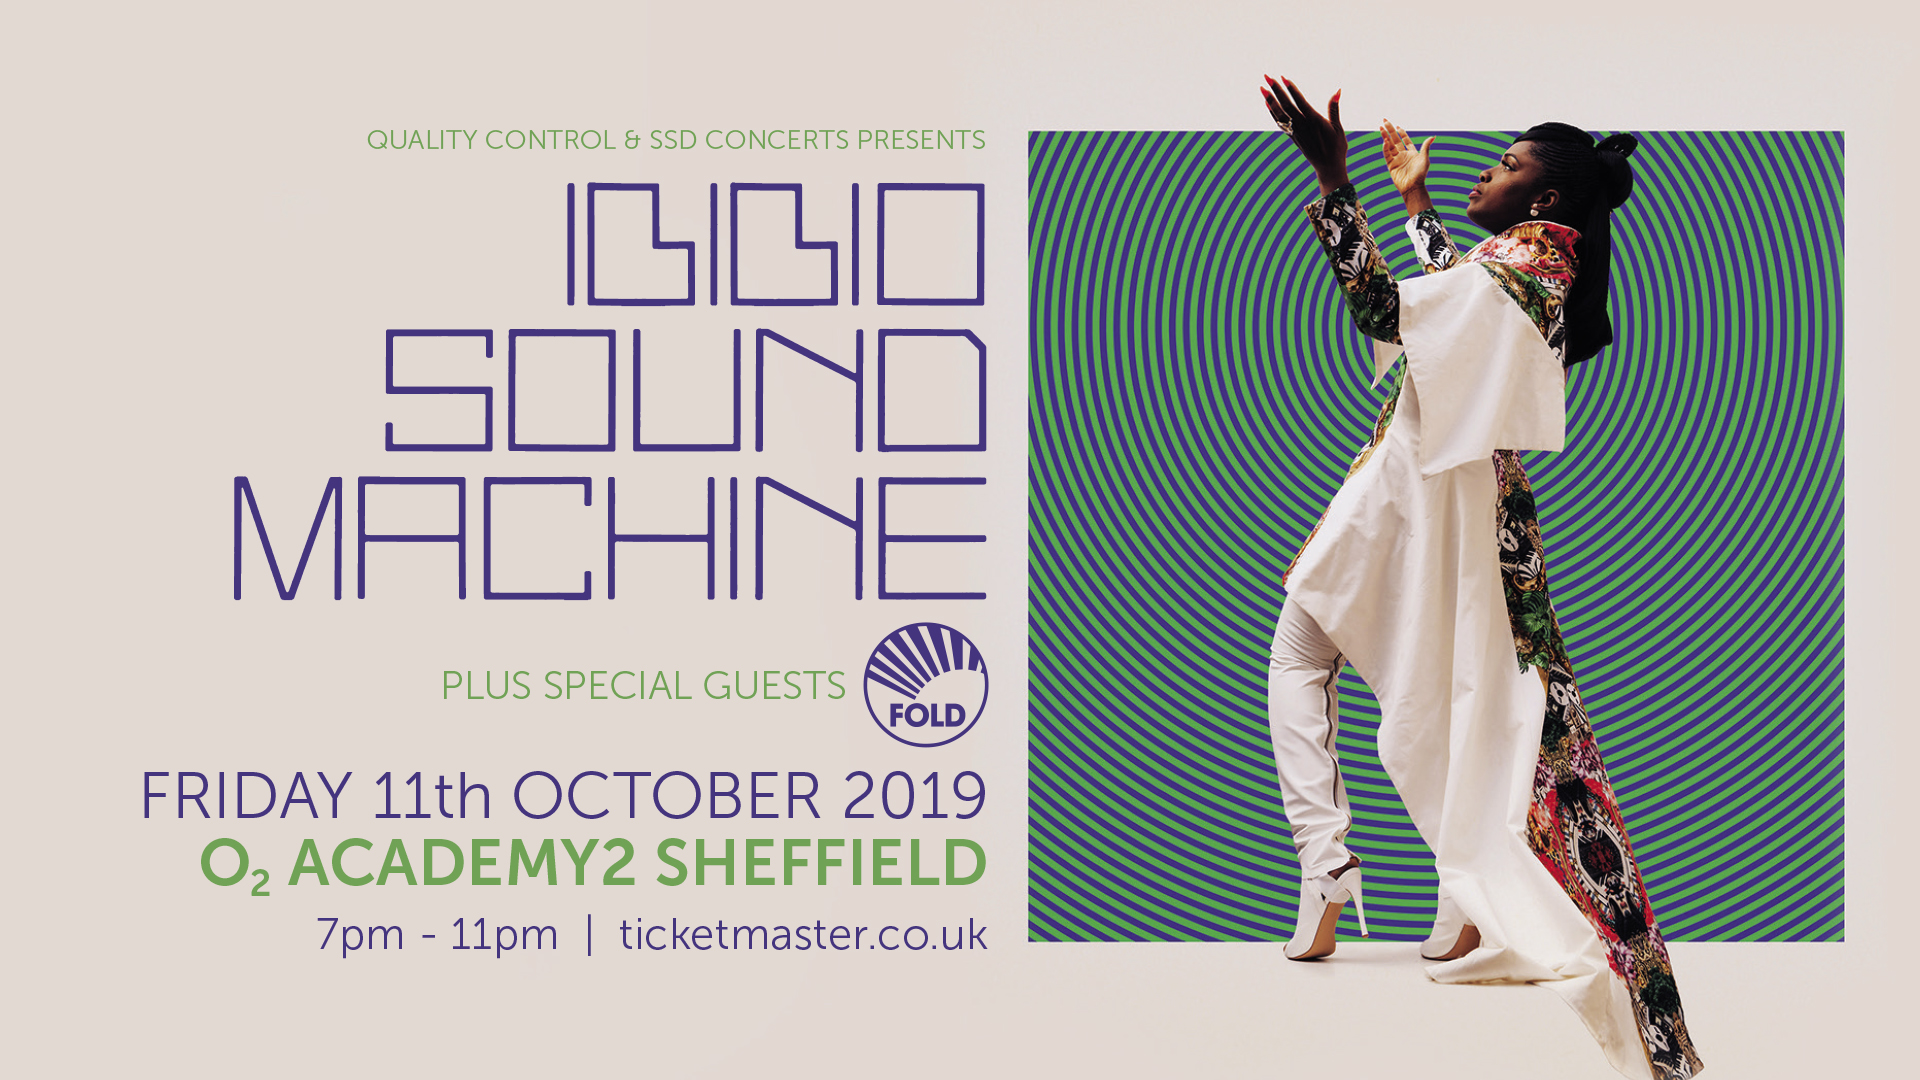 Ibibio Sound Machine with guests Fold at the O2 Academy2 Sheffield - Friday October 11, 2019